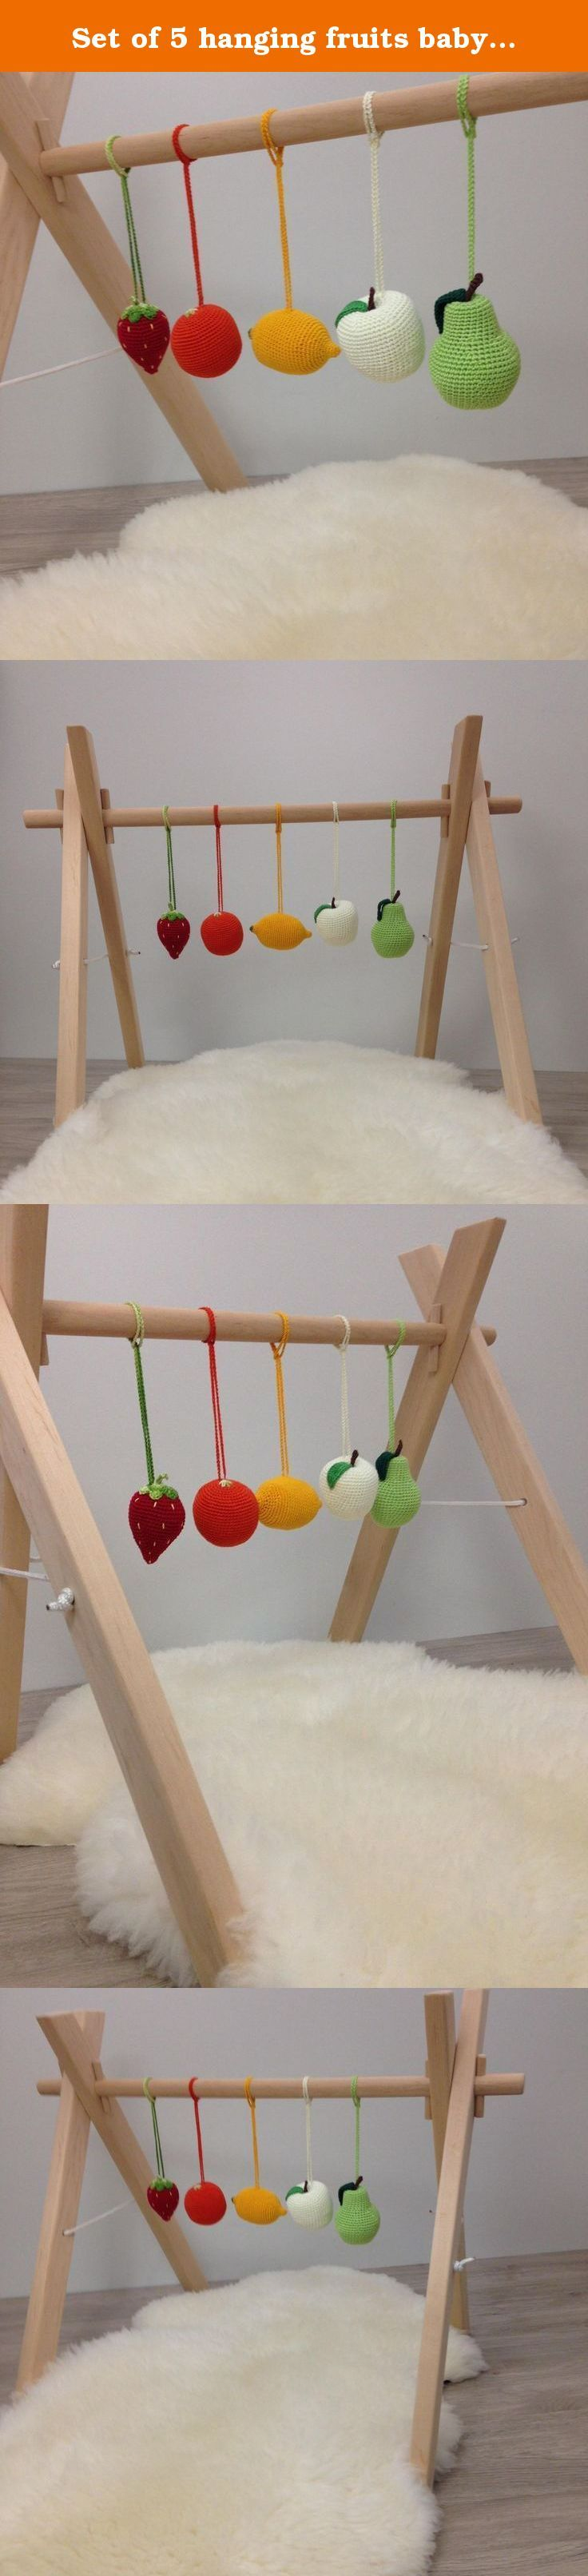 Best crib toys your baby - Set Of 5 Hanging Fruits Baby Gym Toy Crib Toy Shower Gift Organic